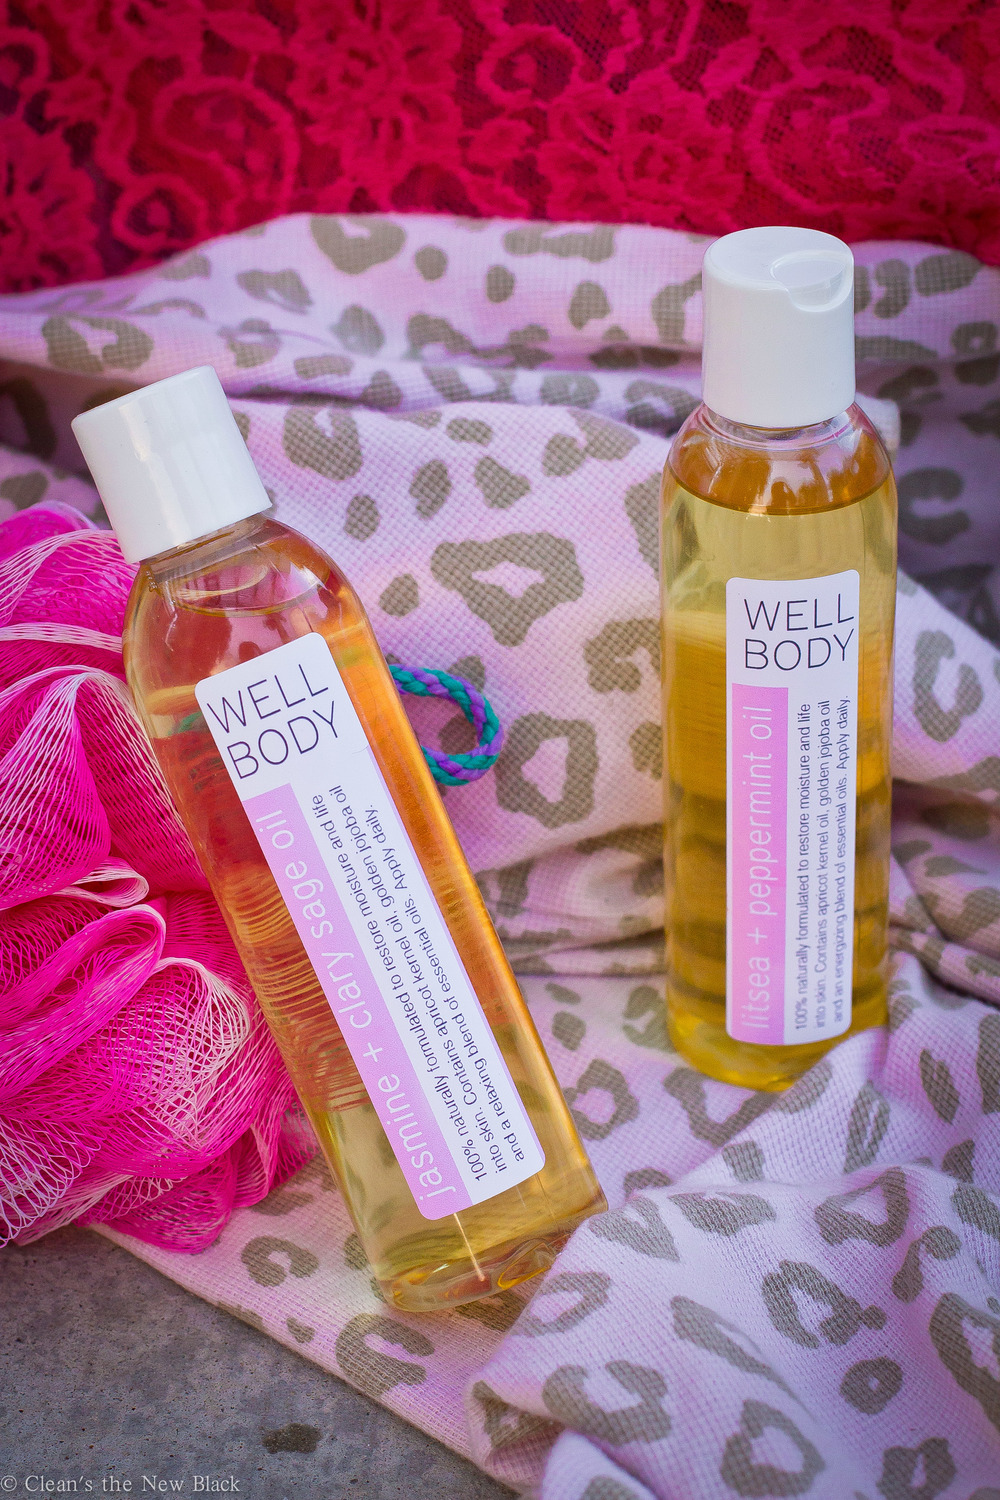 Well Body Body Oil Review and Interview with founder